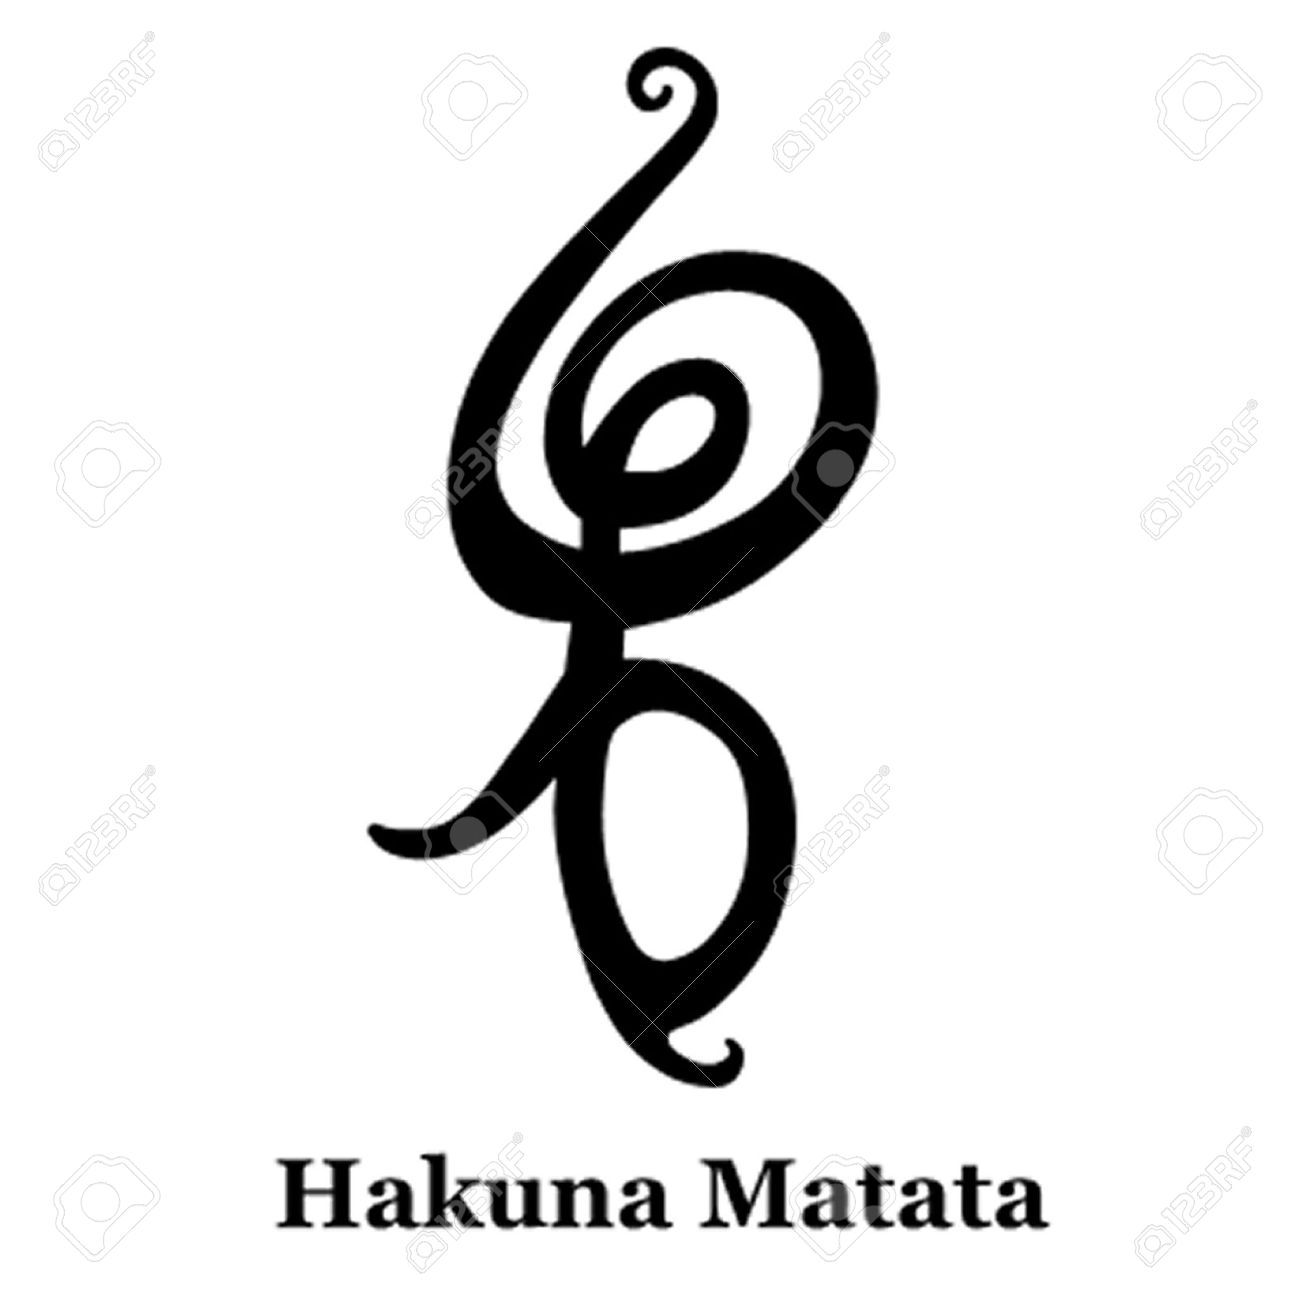 Hakuna matata symbol no worries for the rest of your days hakuna matata symbol no worries for the rest of your buycottarizona